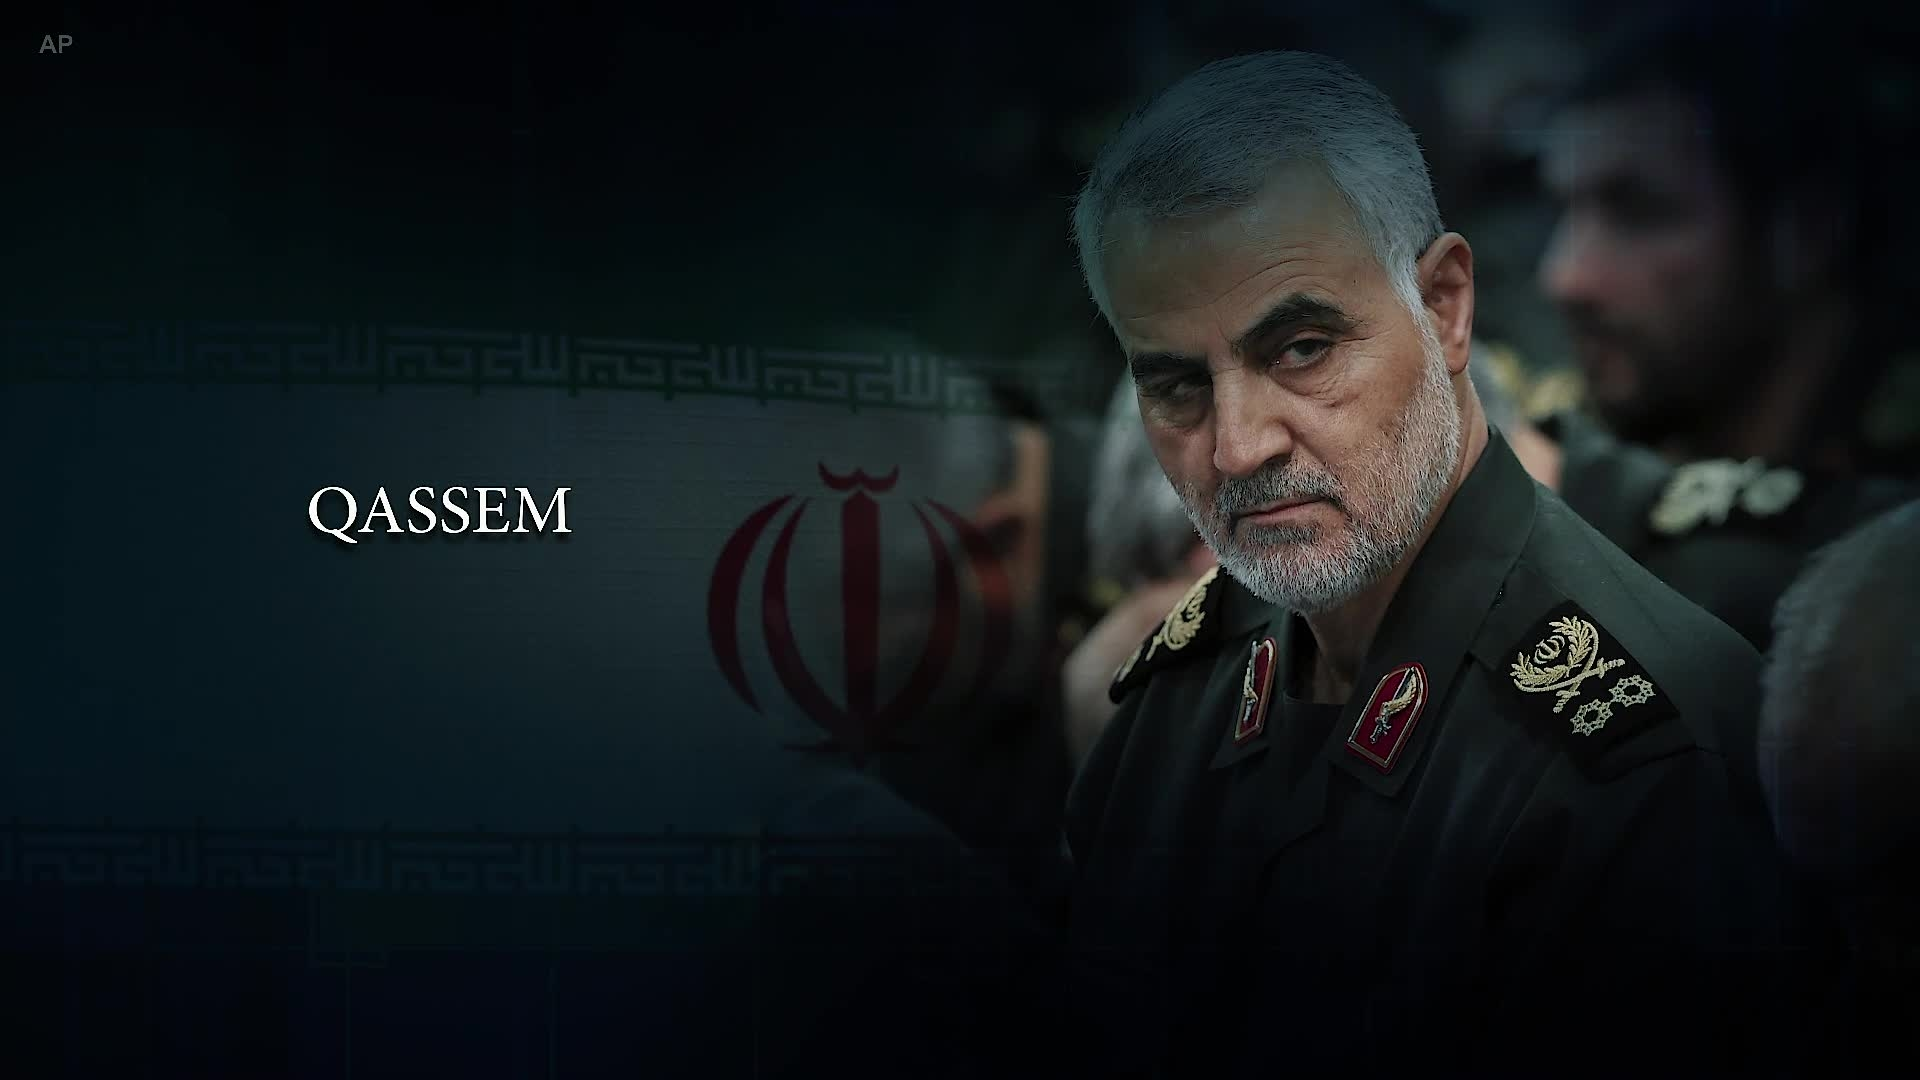 Qassem Soleimani: From Construction Worker to Architect of Iran's Middle East Expansion